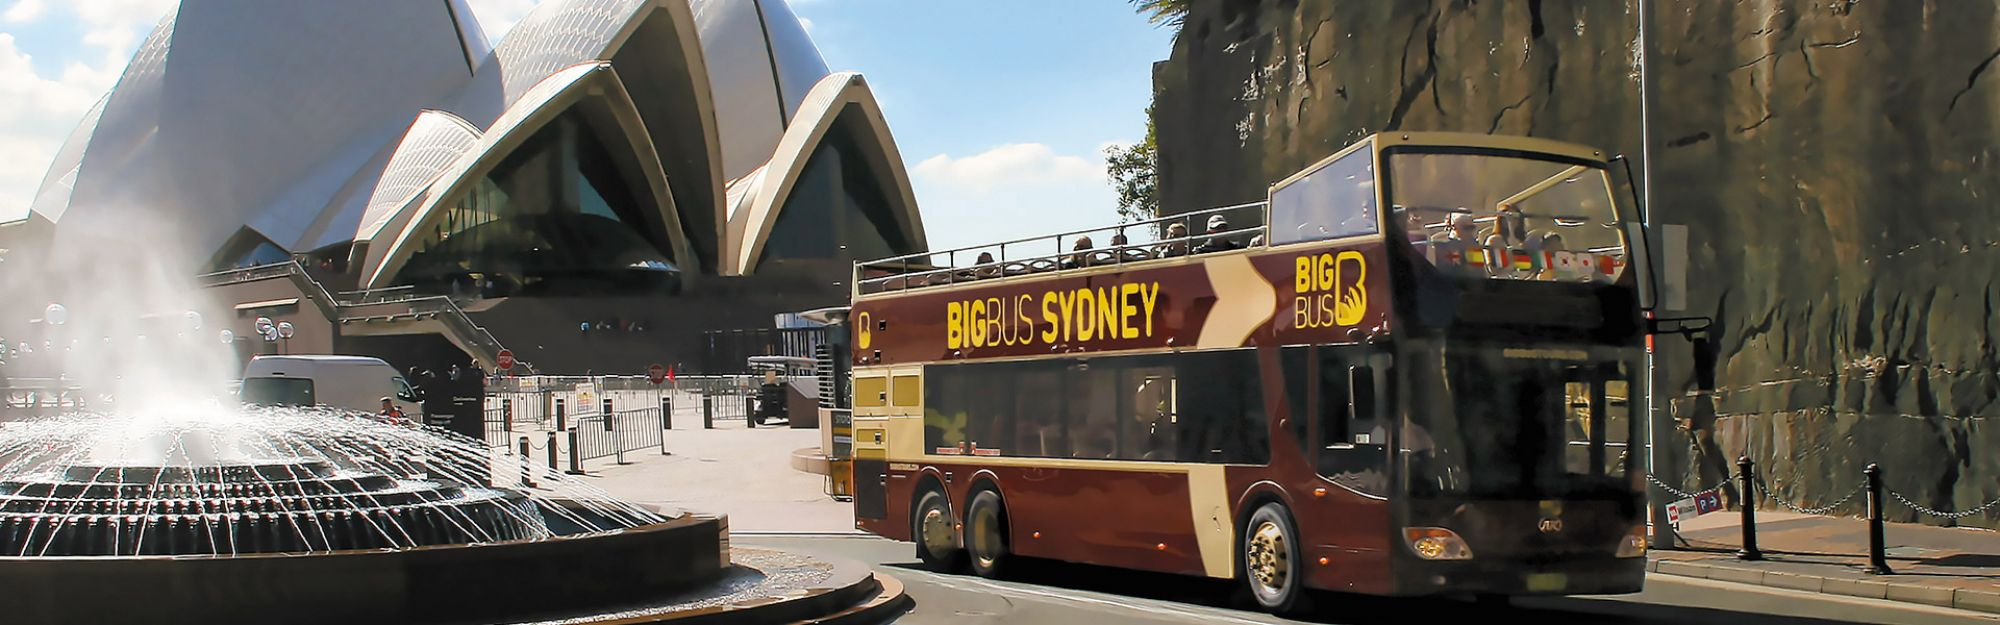 Sydney Sydney City Highlights